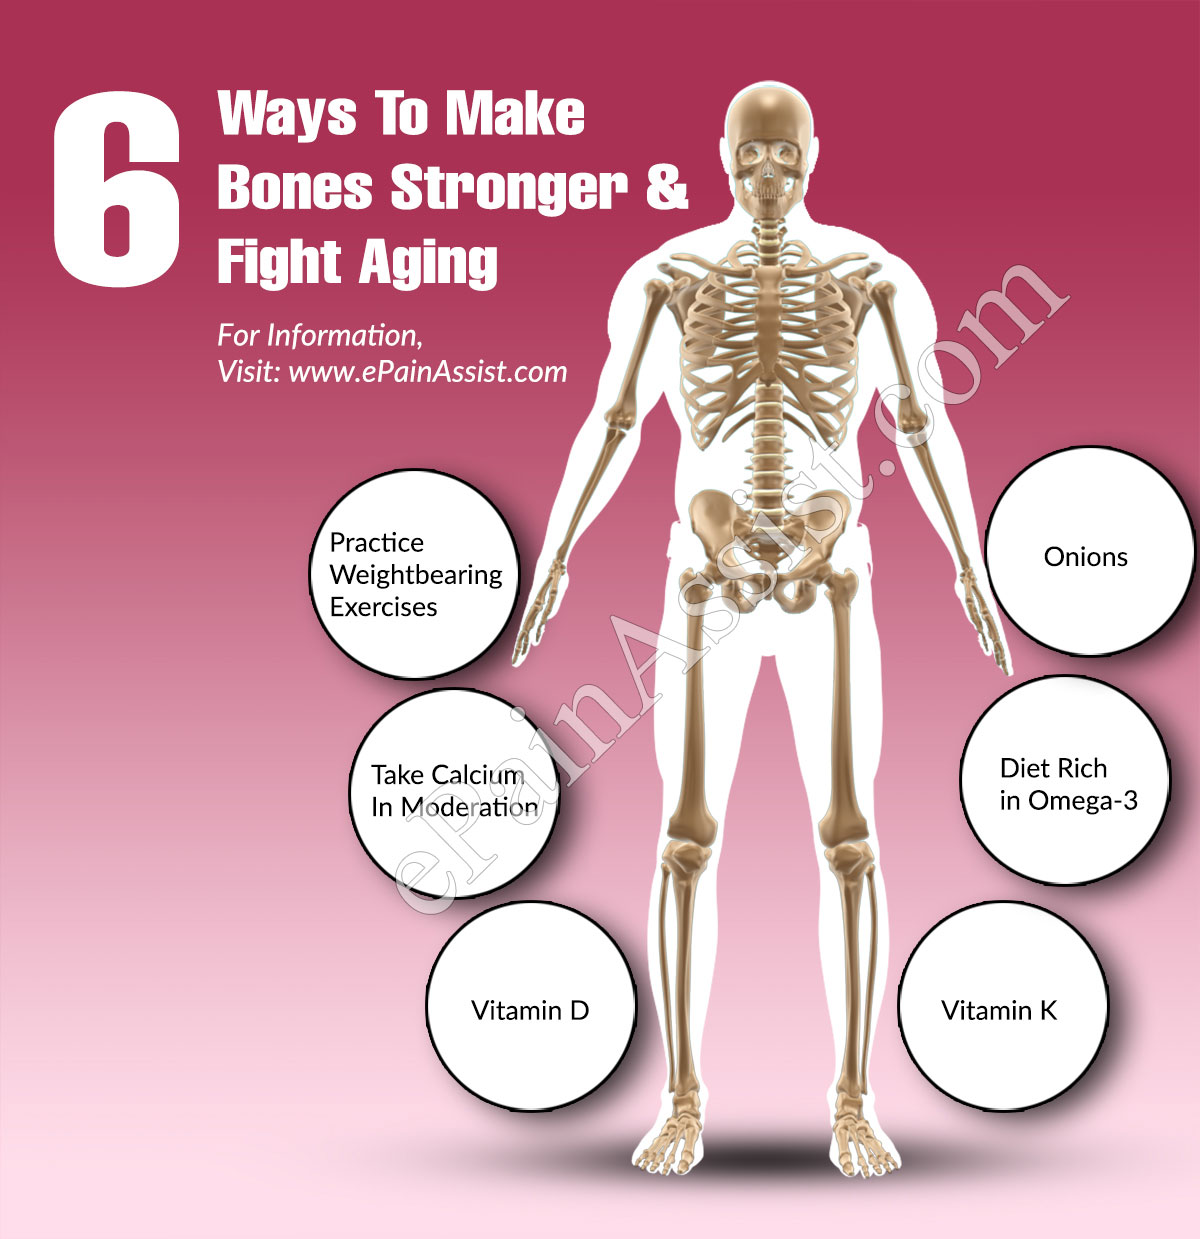 6 Ways To Make Bones Stronger And Fight Aging